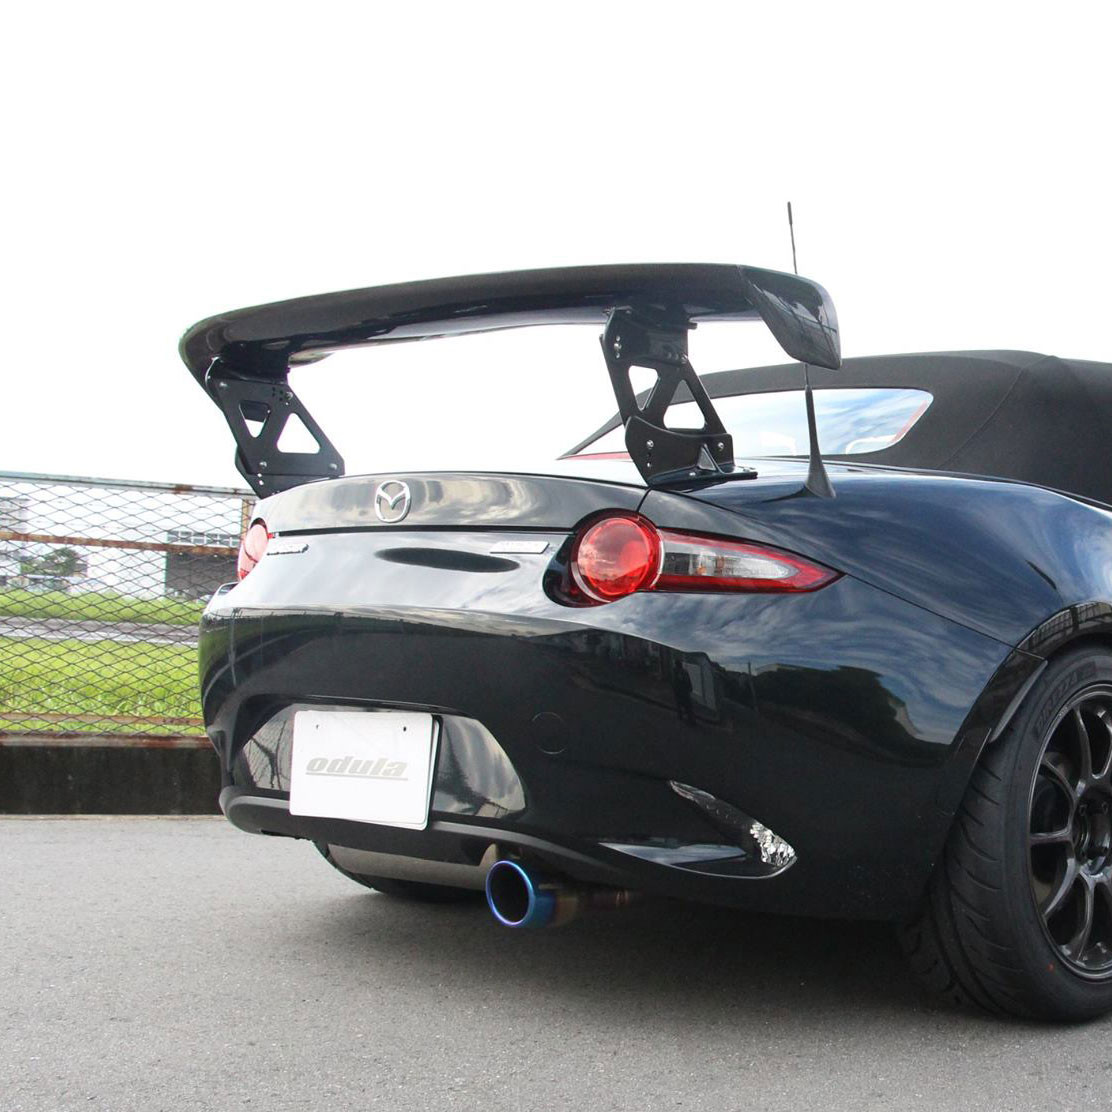 odula carbon gt wing for miata mx 5 nd 2016 rev9. Black Bedroom Furniture Sets. Home Design Ideas